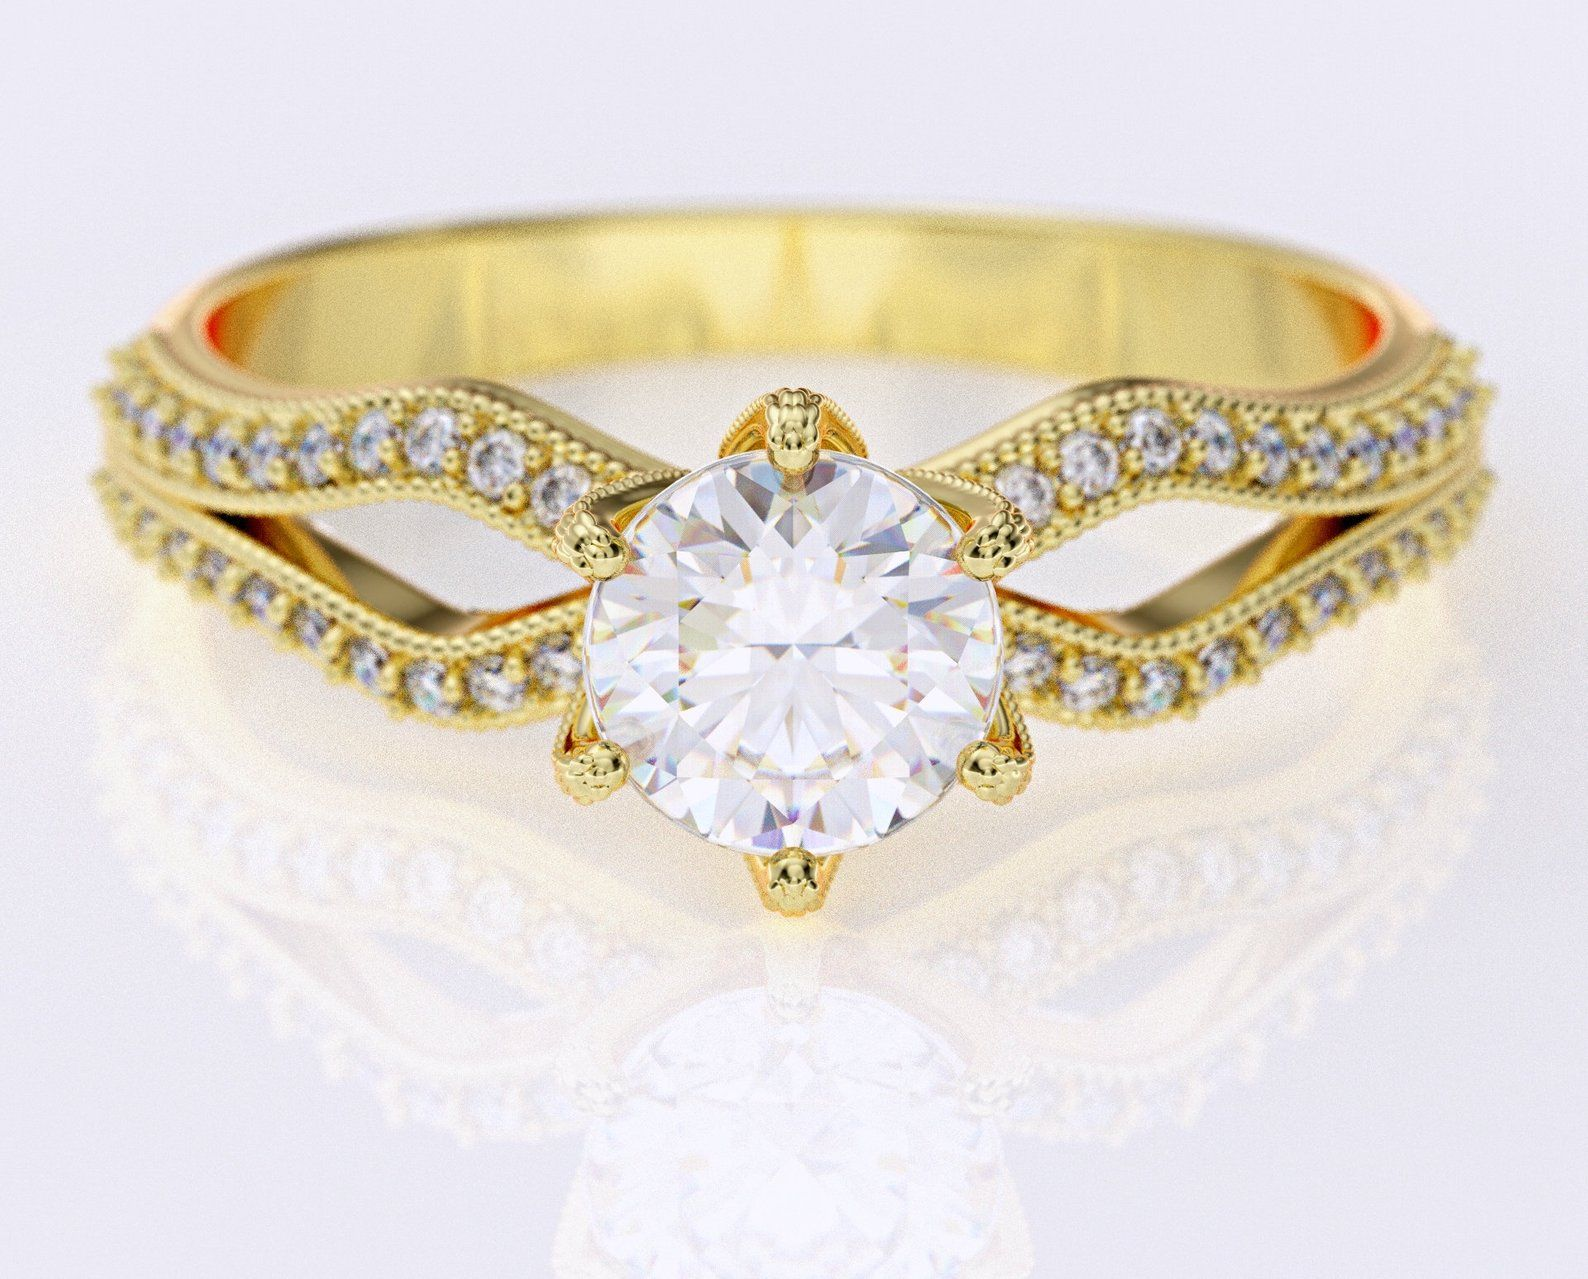 White Sapphire Ring Yellow Gold Engagement Ring 14k Gold Ring